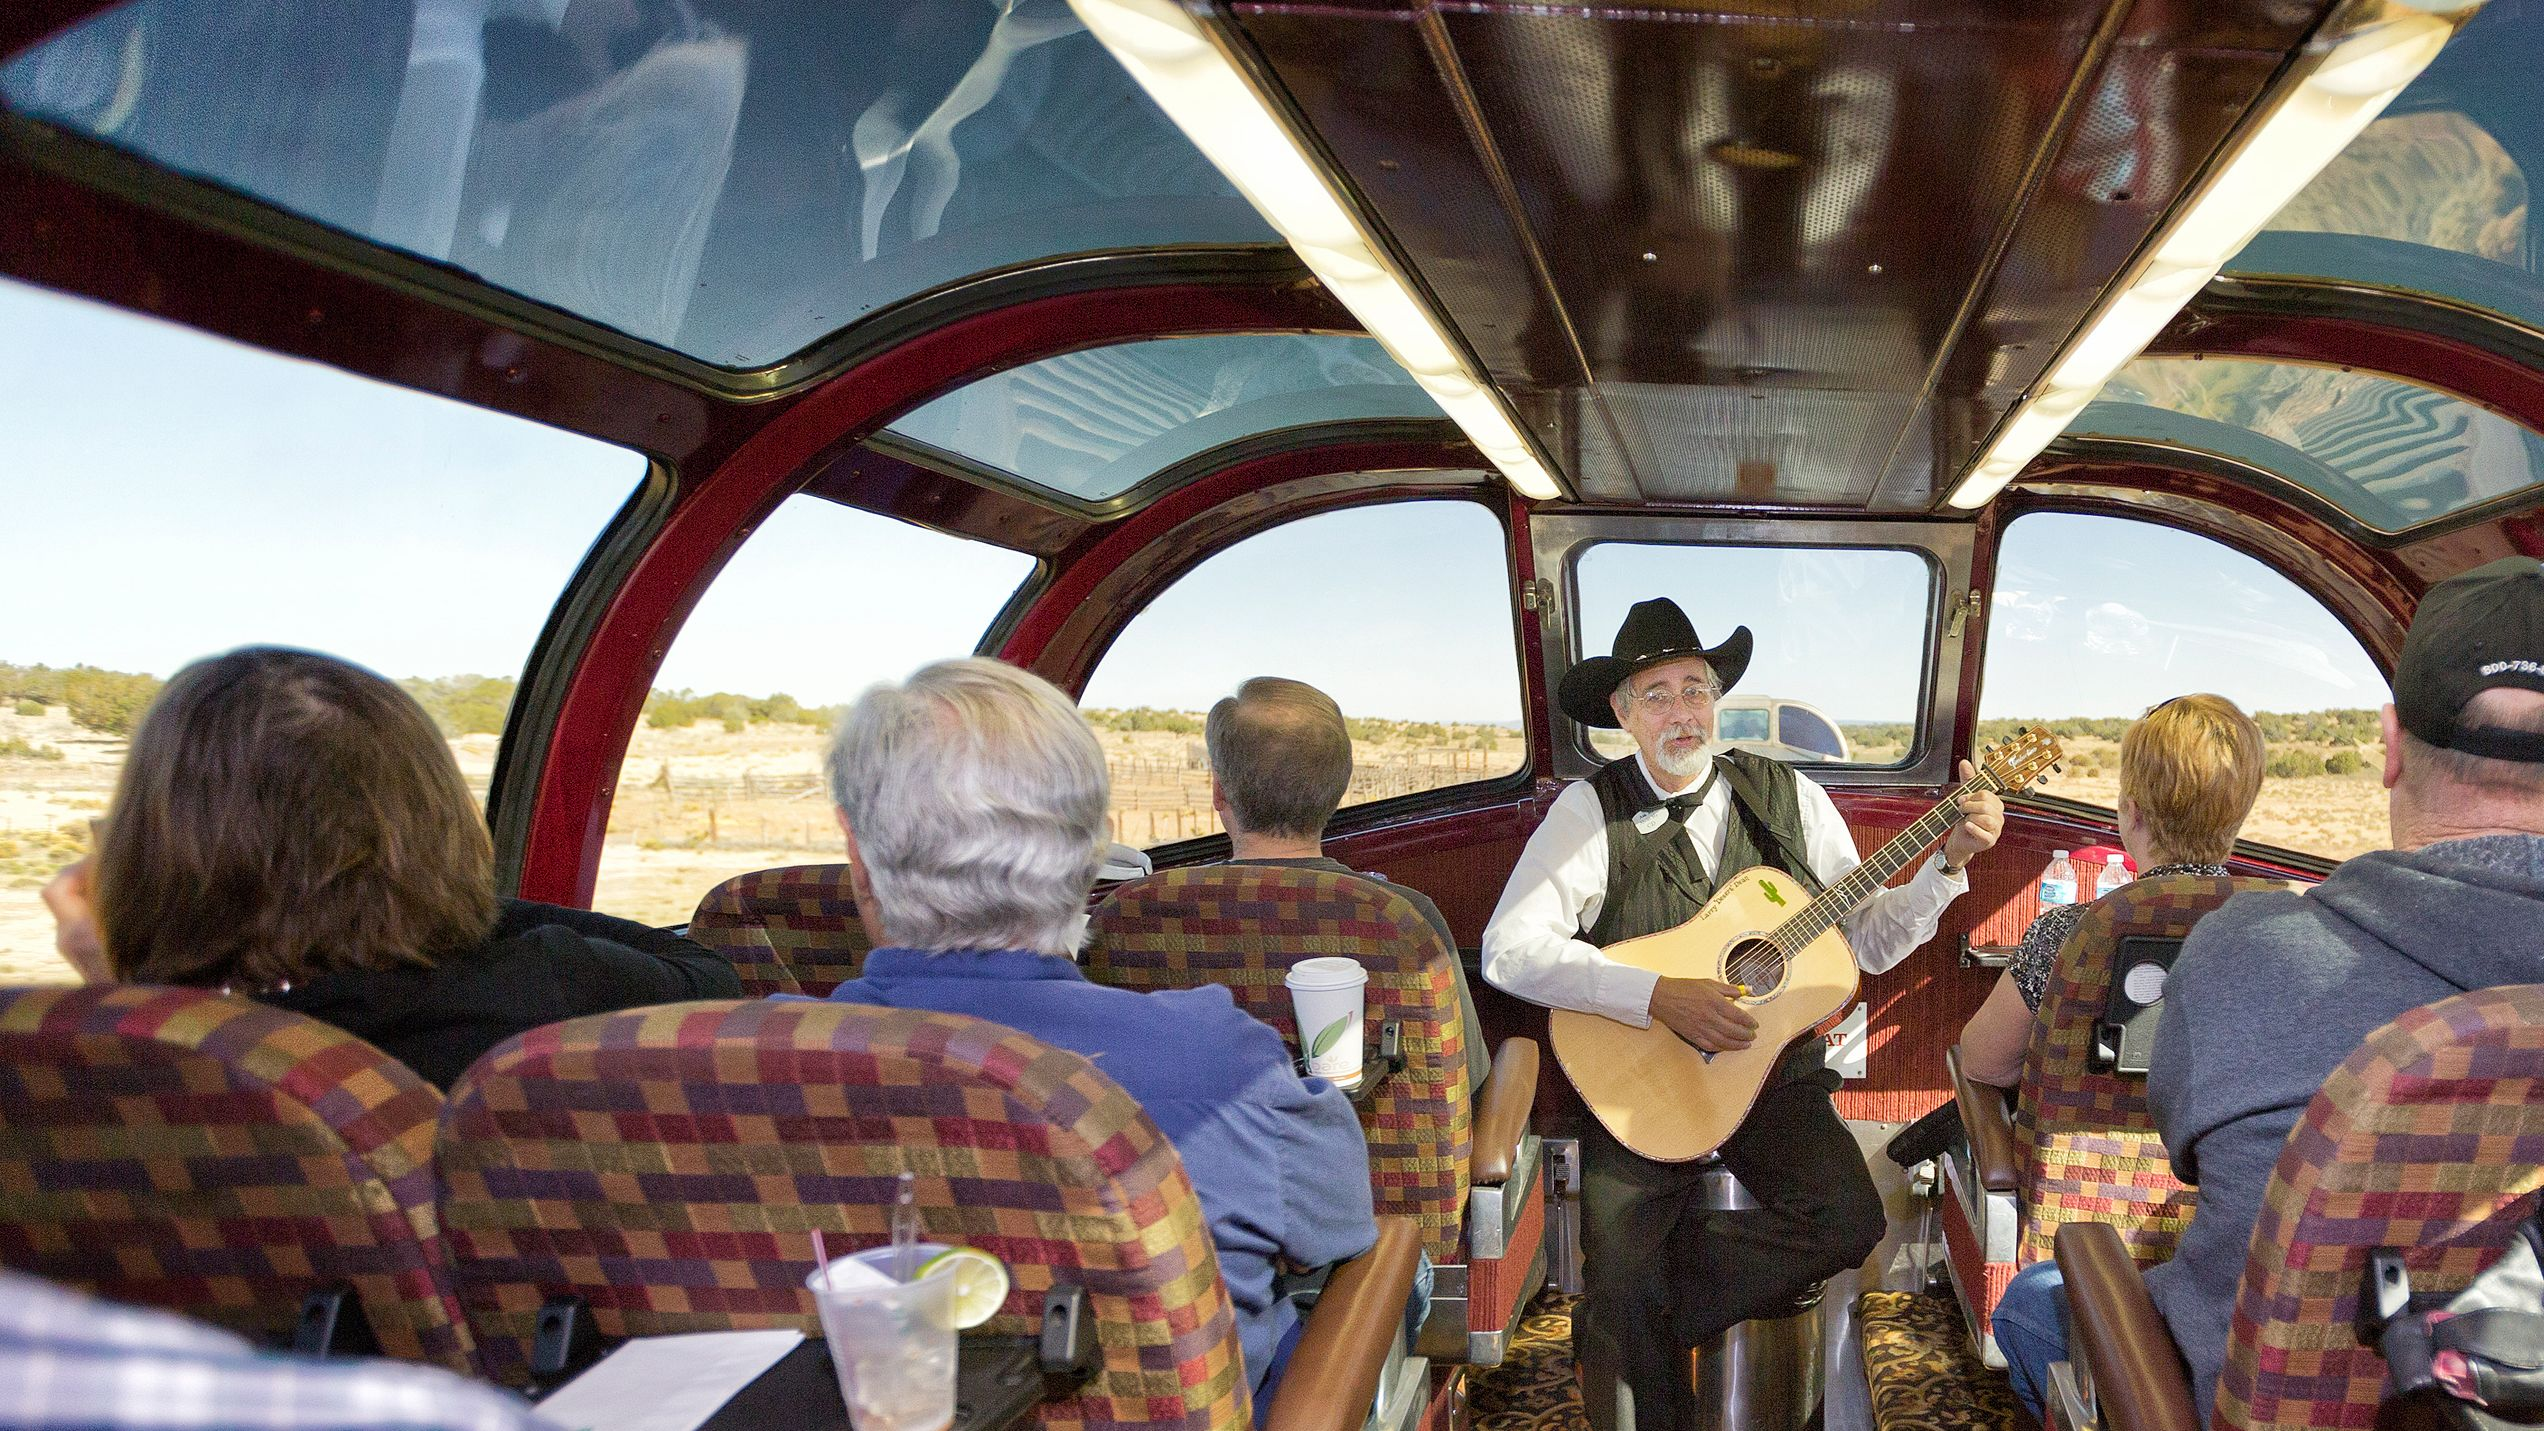 Aboard the train at the Grand Canyon Railway